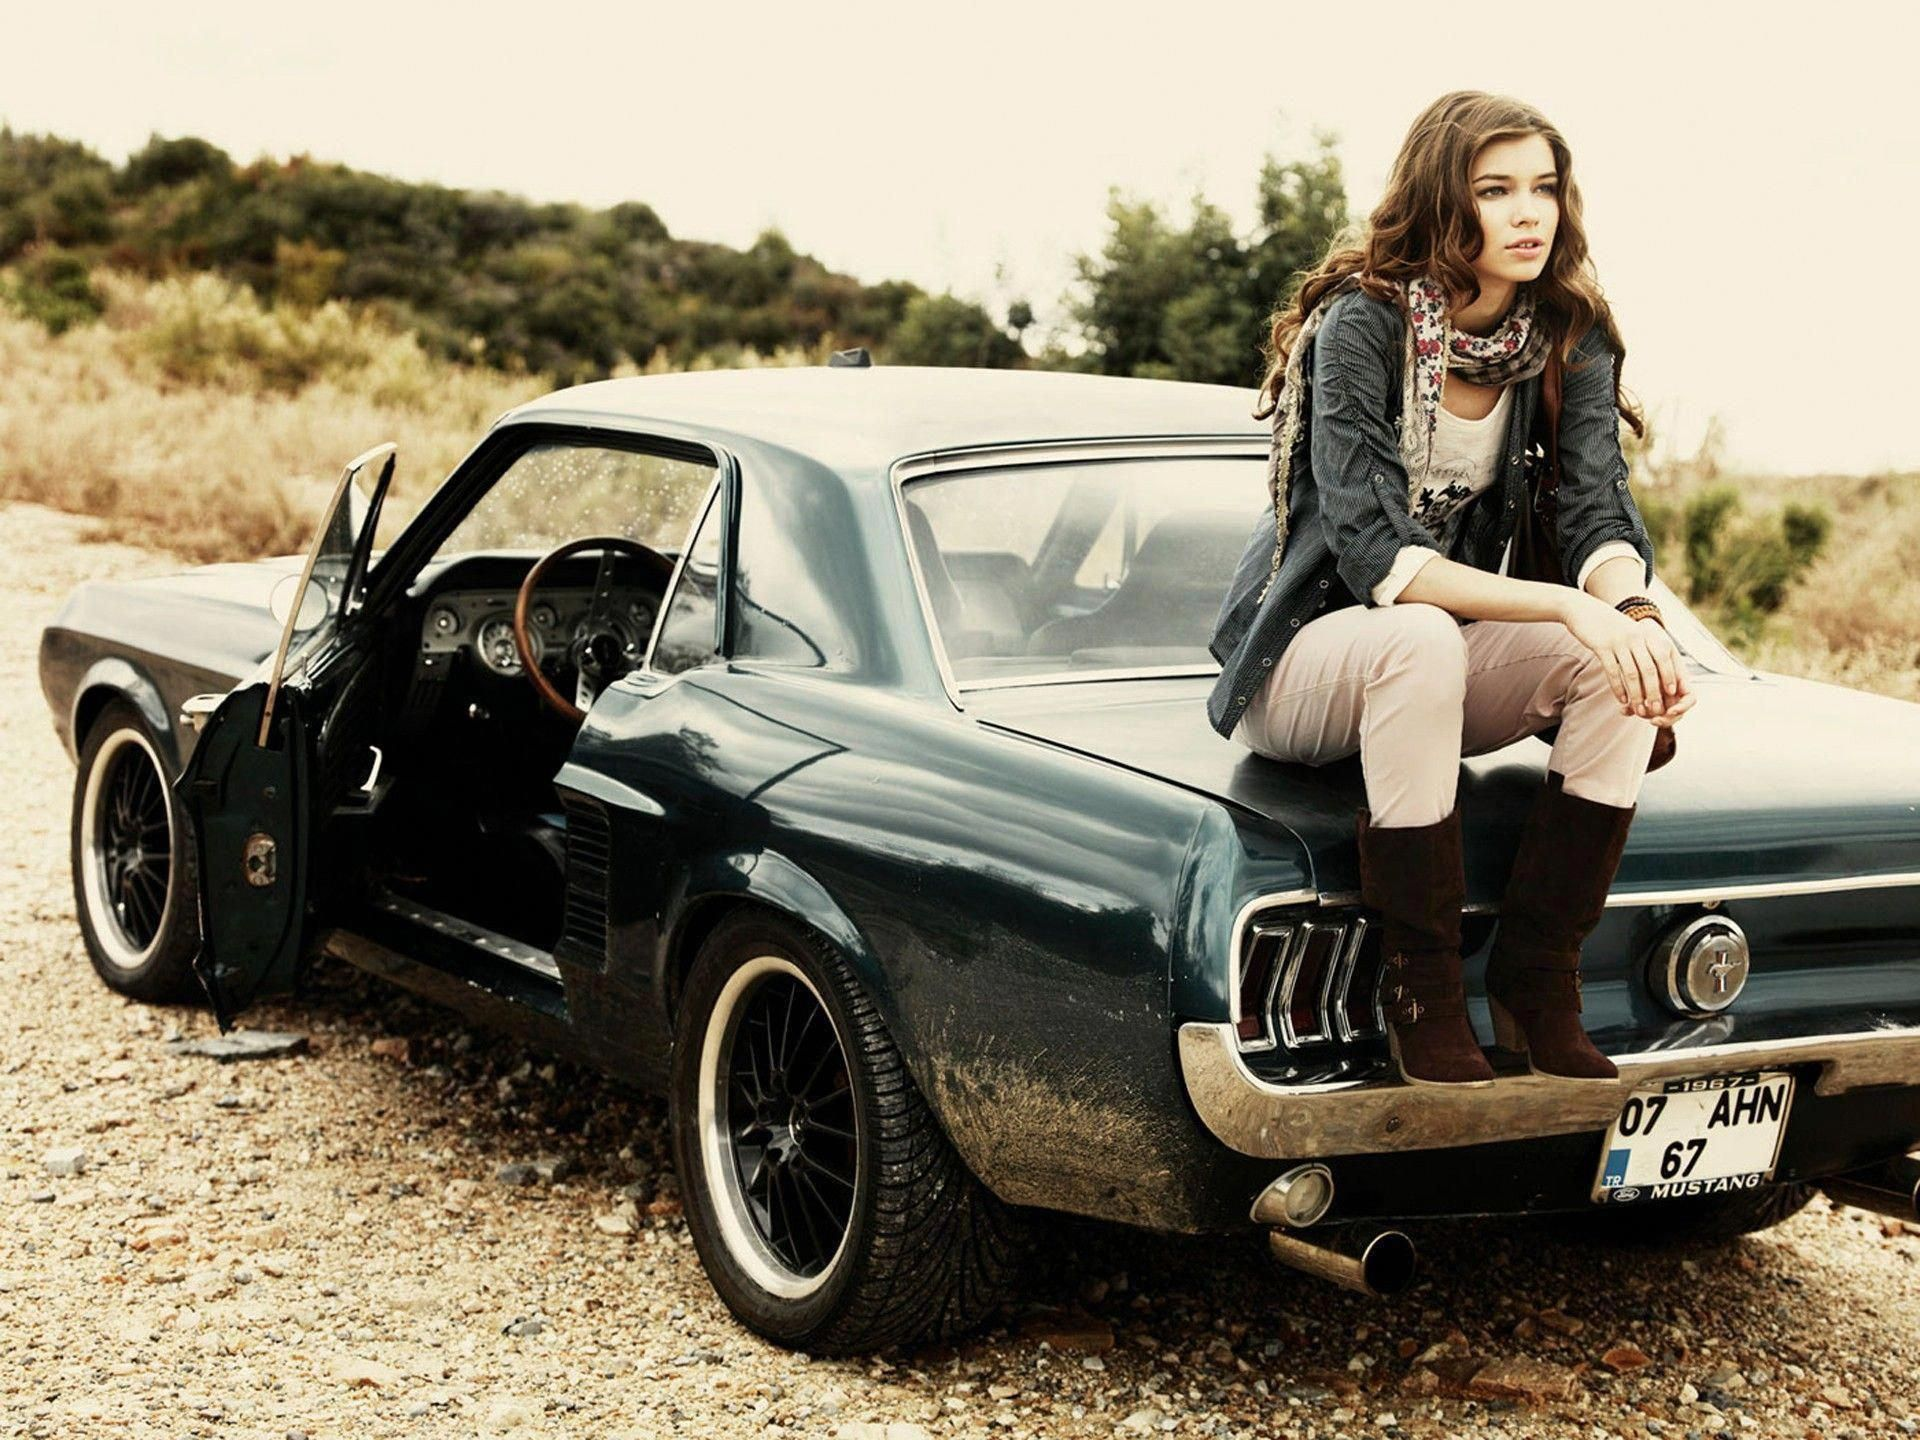 Vintage Photography Muscle Cars Turkey Ford Mustang Normal Wallpaper Fordclassiccars Mustangclassiccars American Mustang Girl Ford Mustang 1967 Mustang Cars